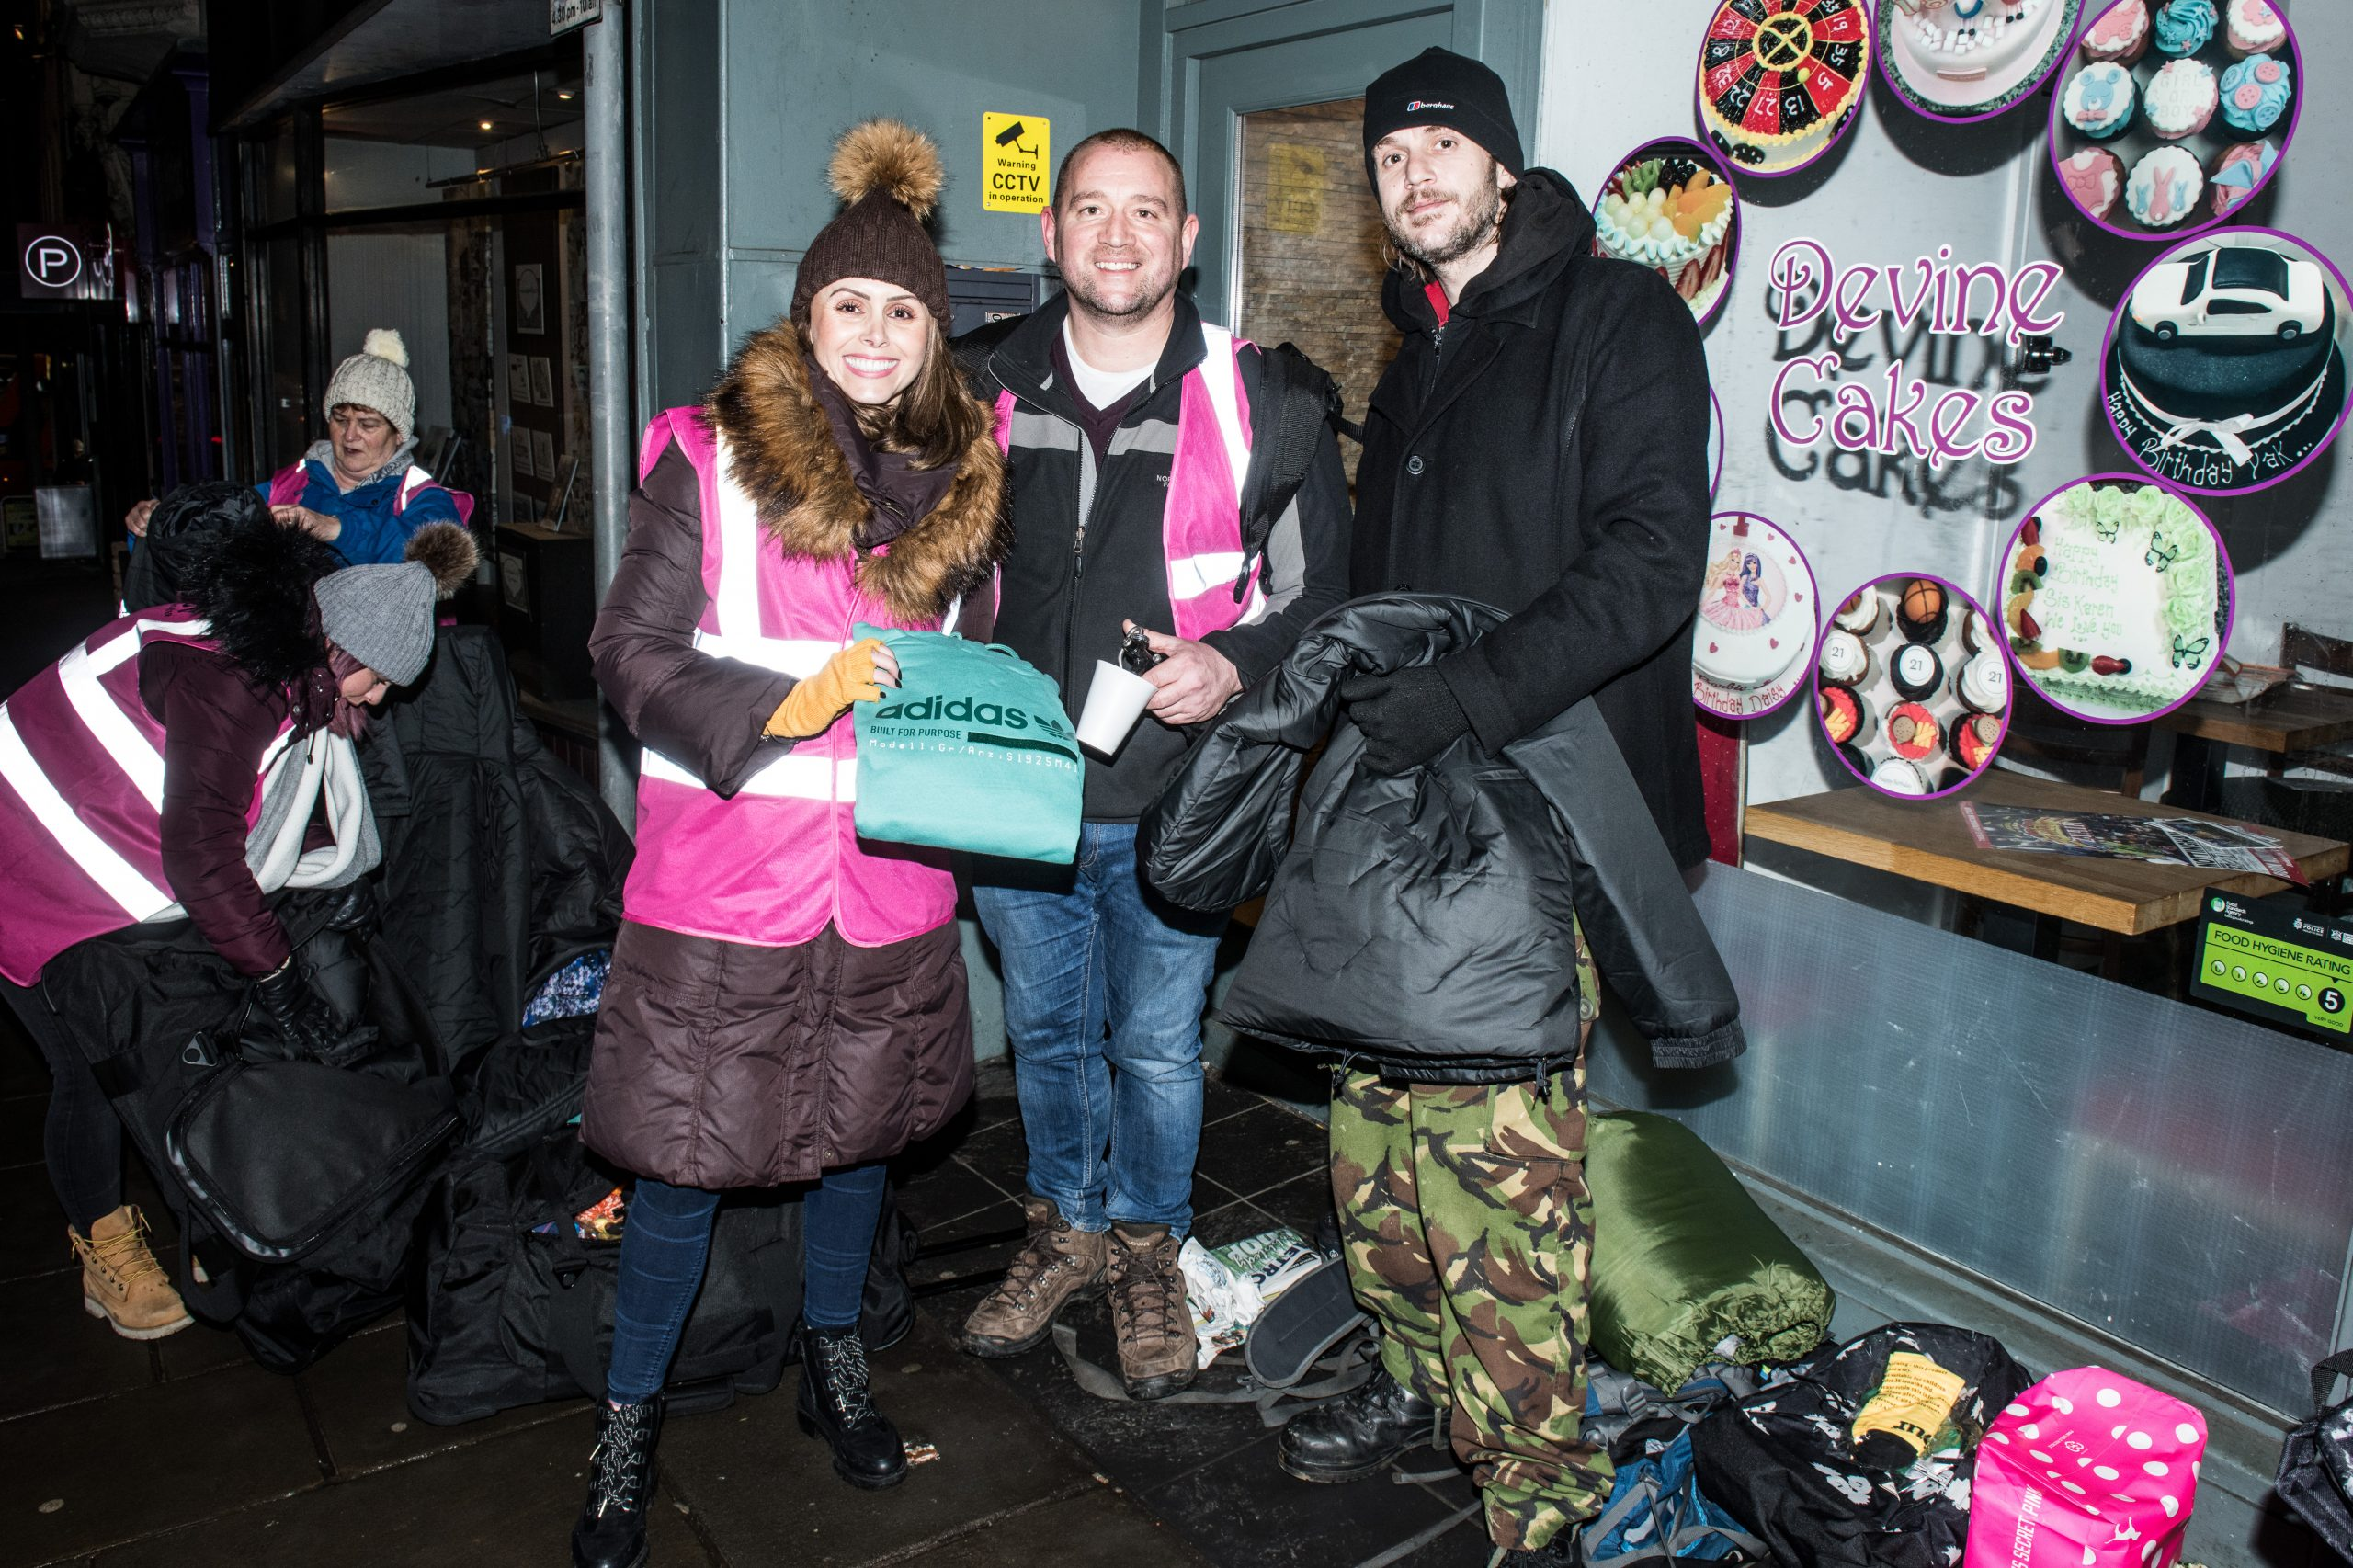 Pass It On volunteers providing used ski gear to homeless people